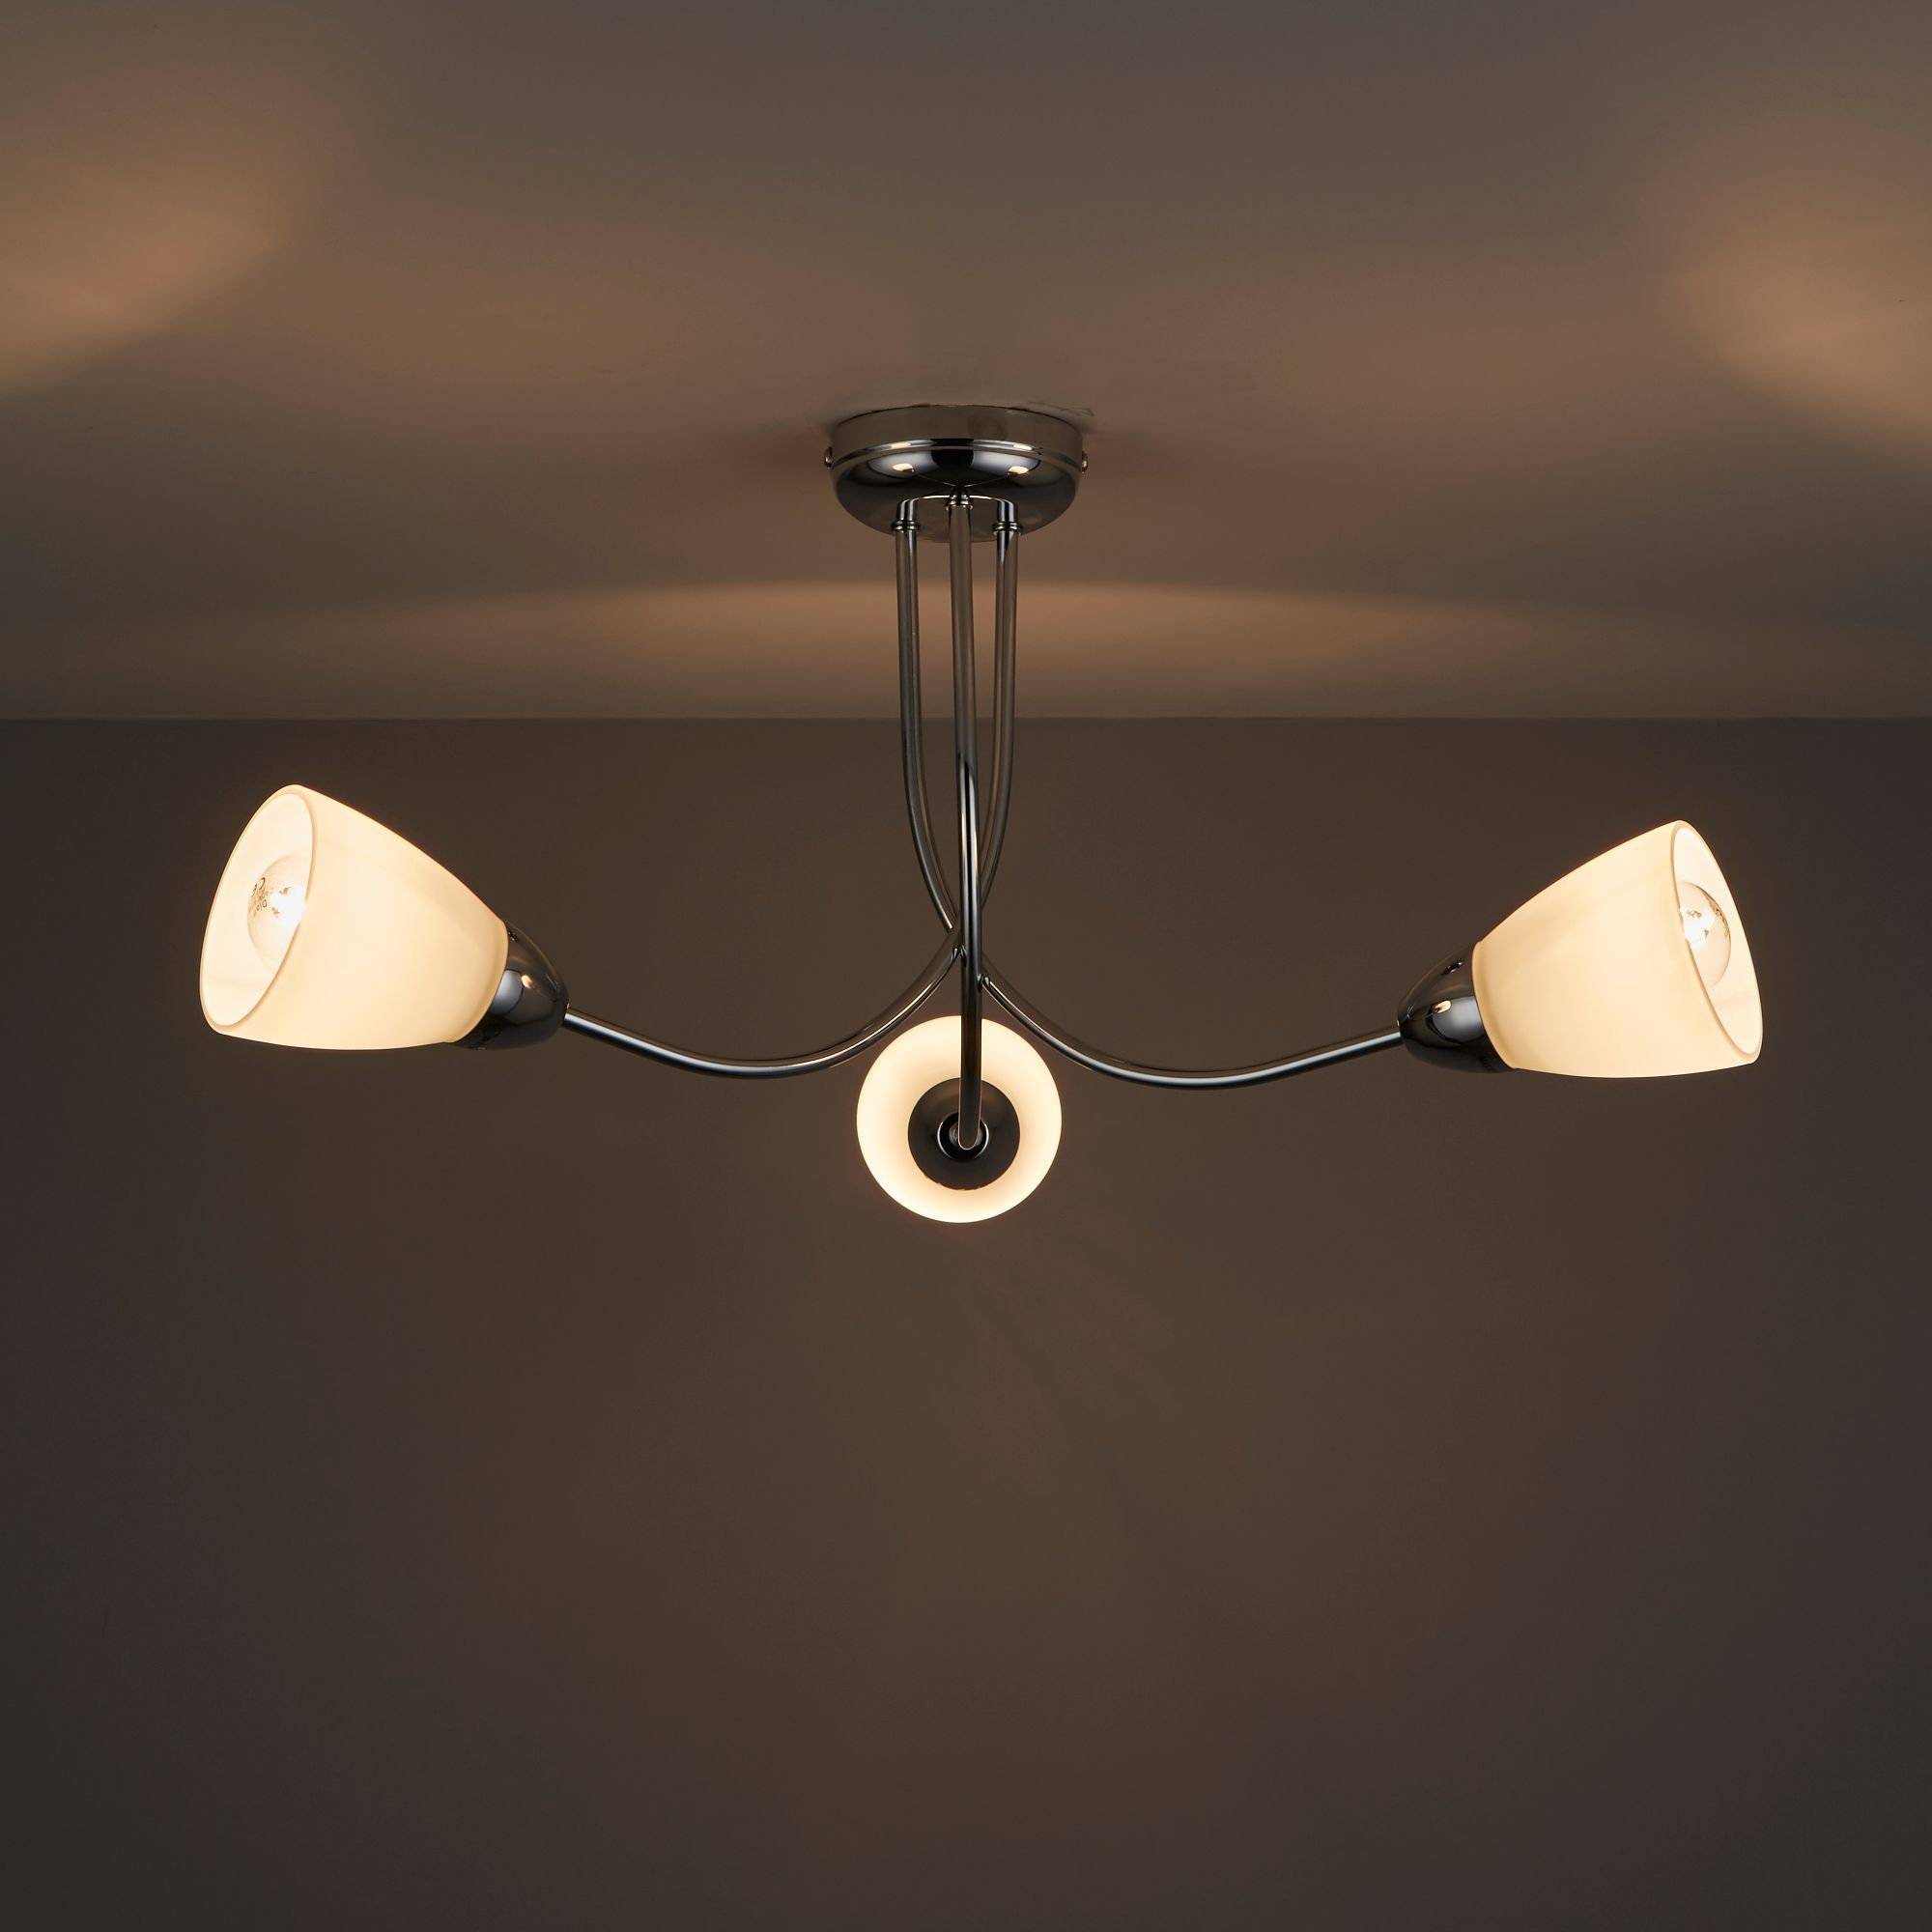 cura chrome effect 3 lamp ceiling light departments. Black Bedroom Furniture Sets. Home Design Ideas